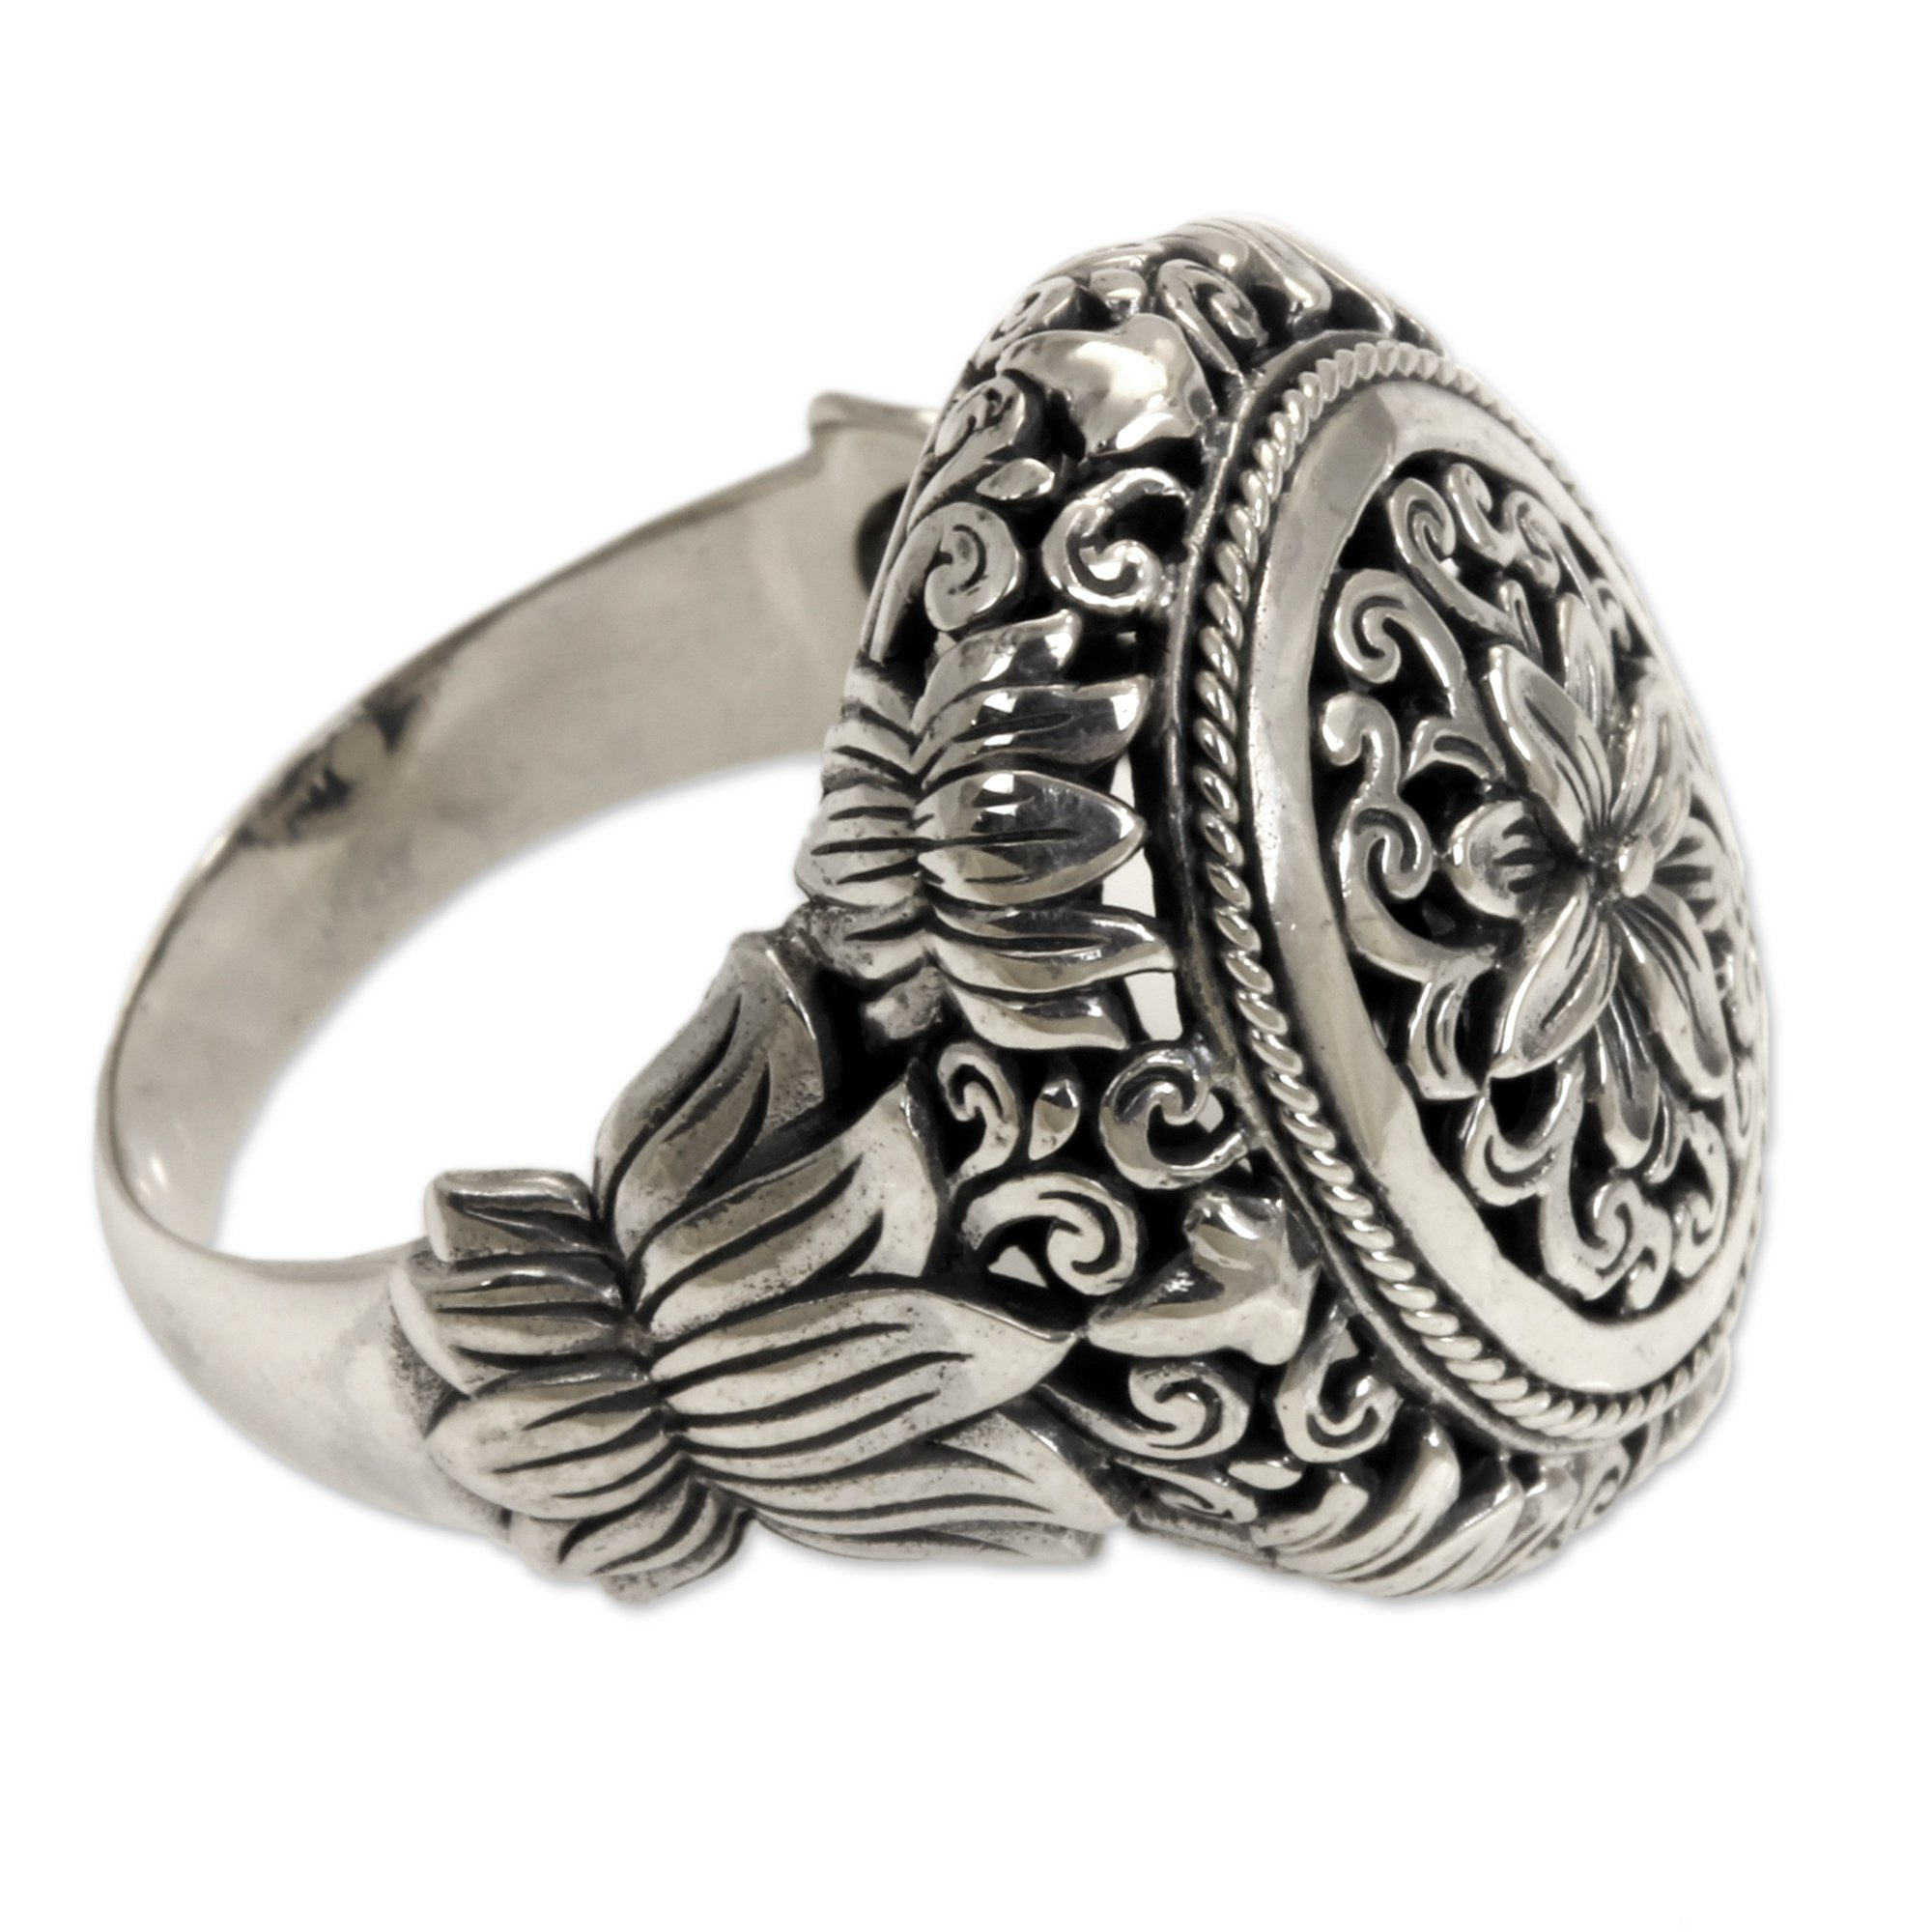 NOVICA .925 Sterling Silver Hand Made Floral Cocktail Ring, 'Precious Lotus'